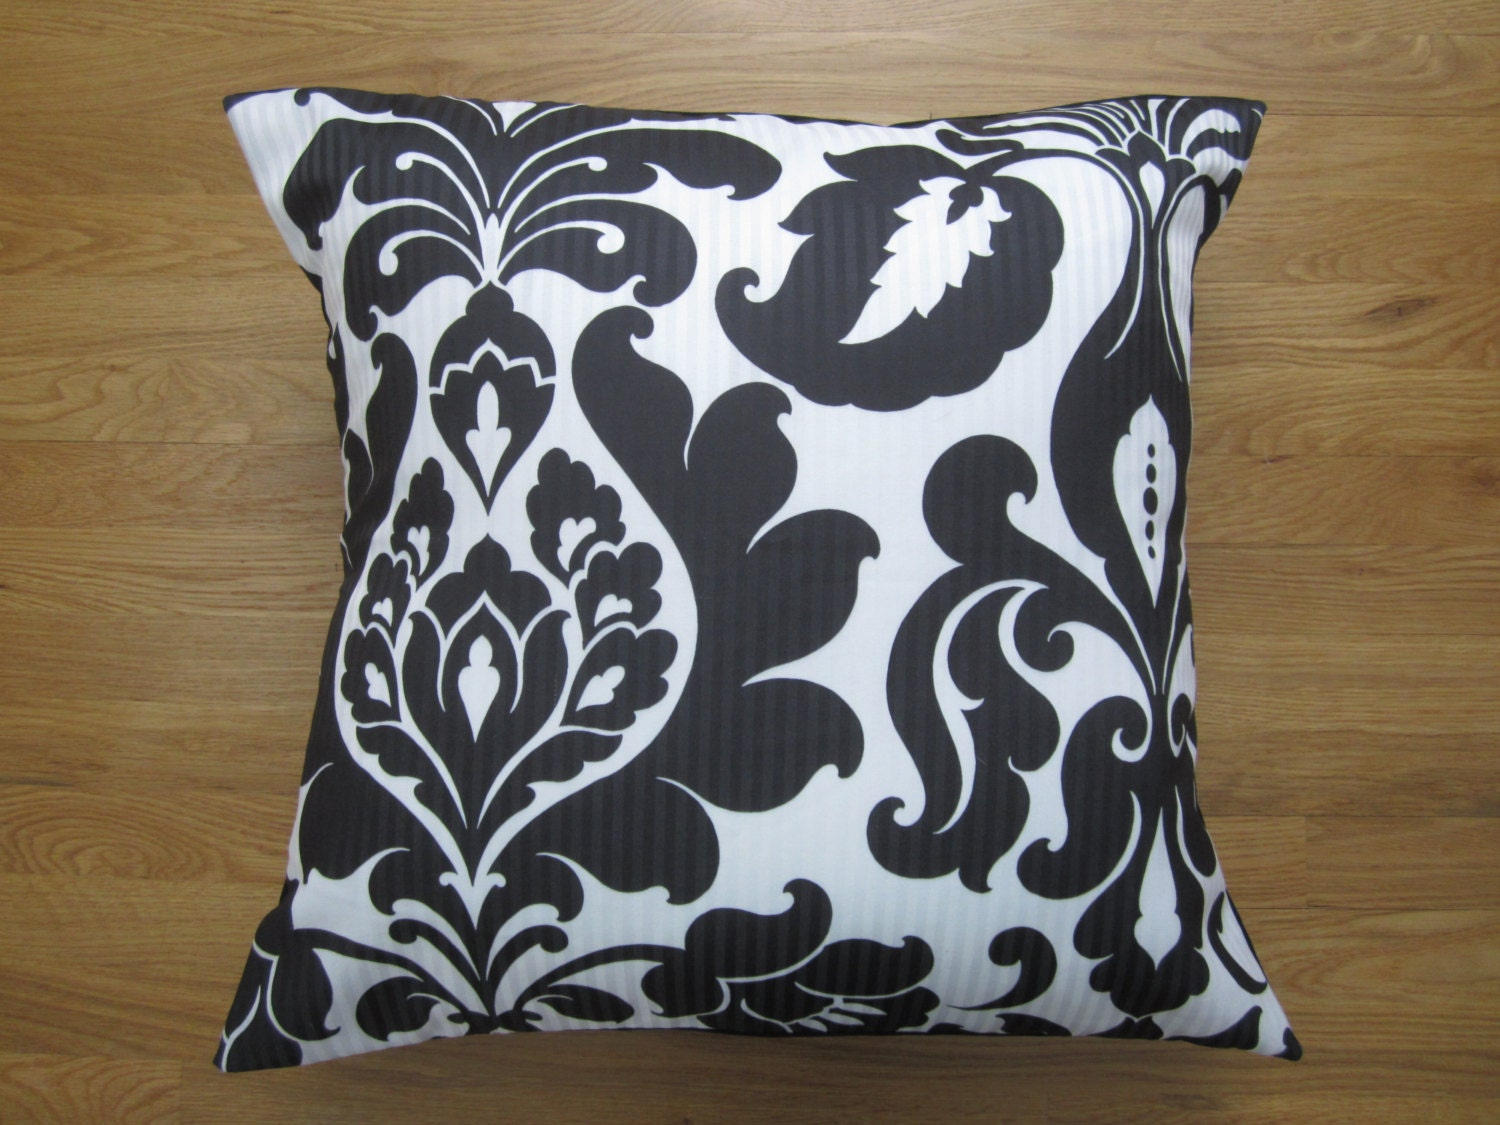 True Modern Pillows : Black White Floor Pillow Modern Damask Pillow Cover 24x24